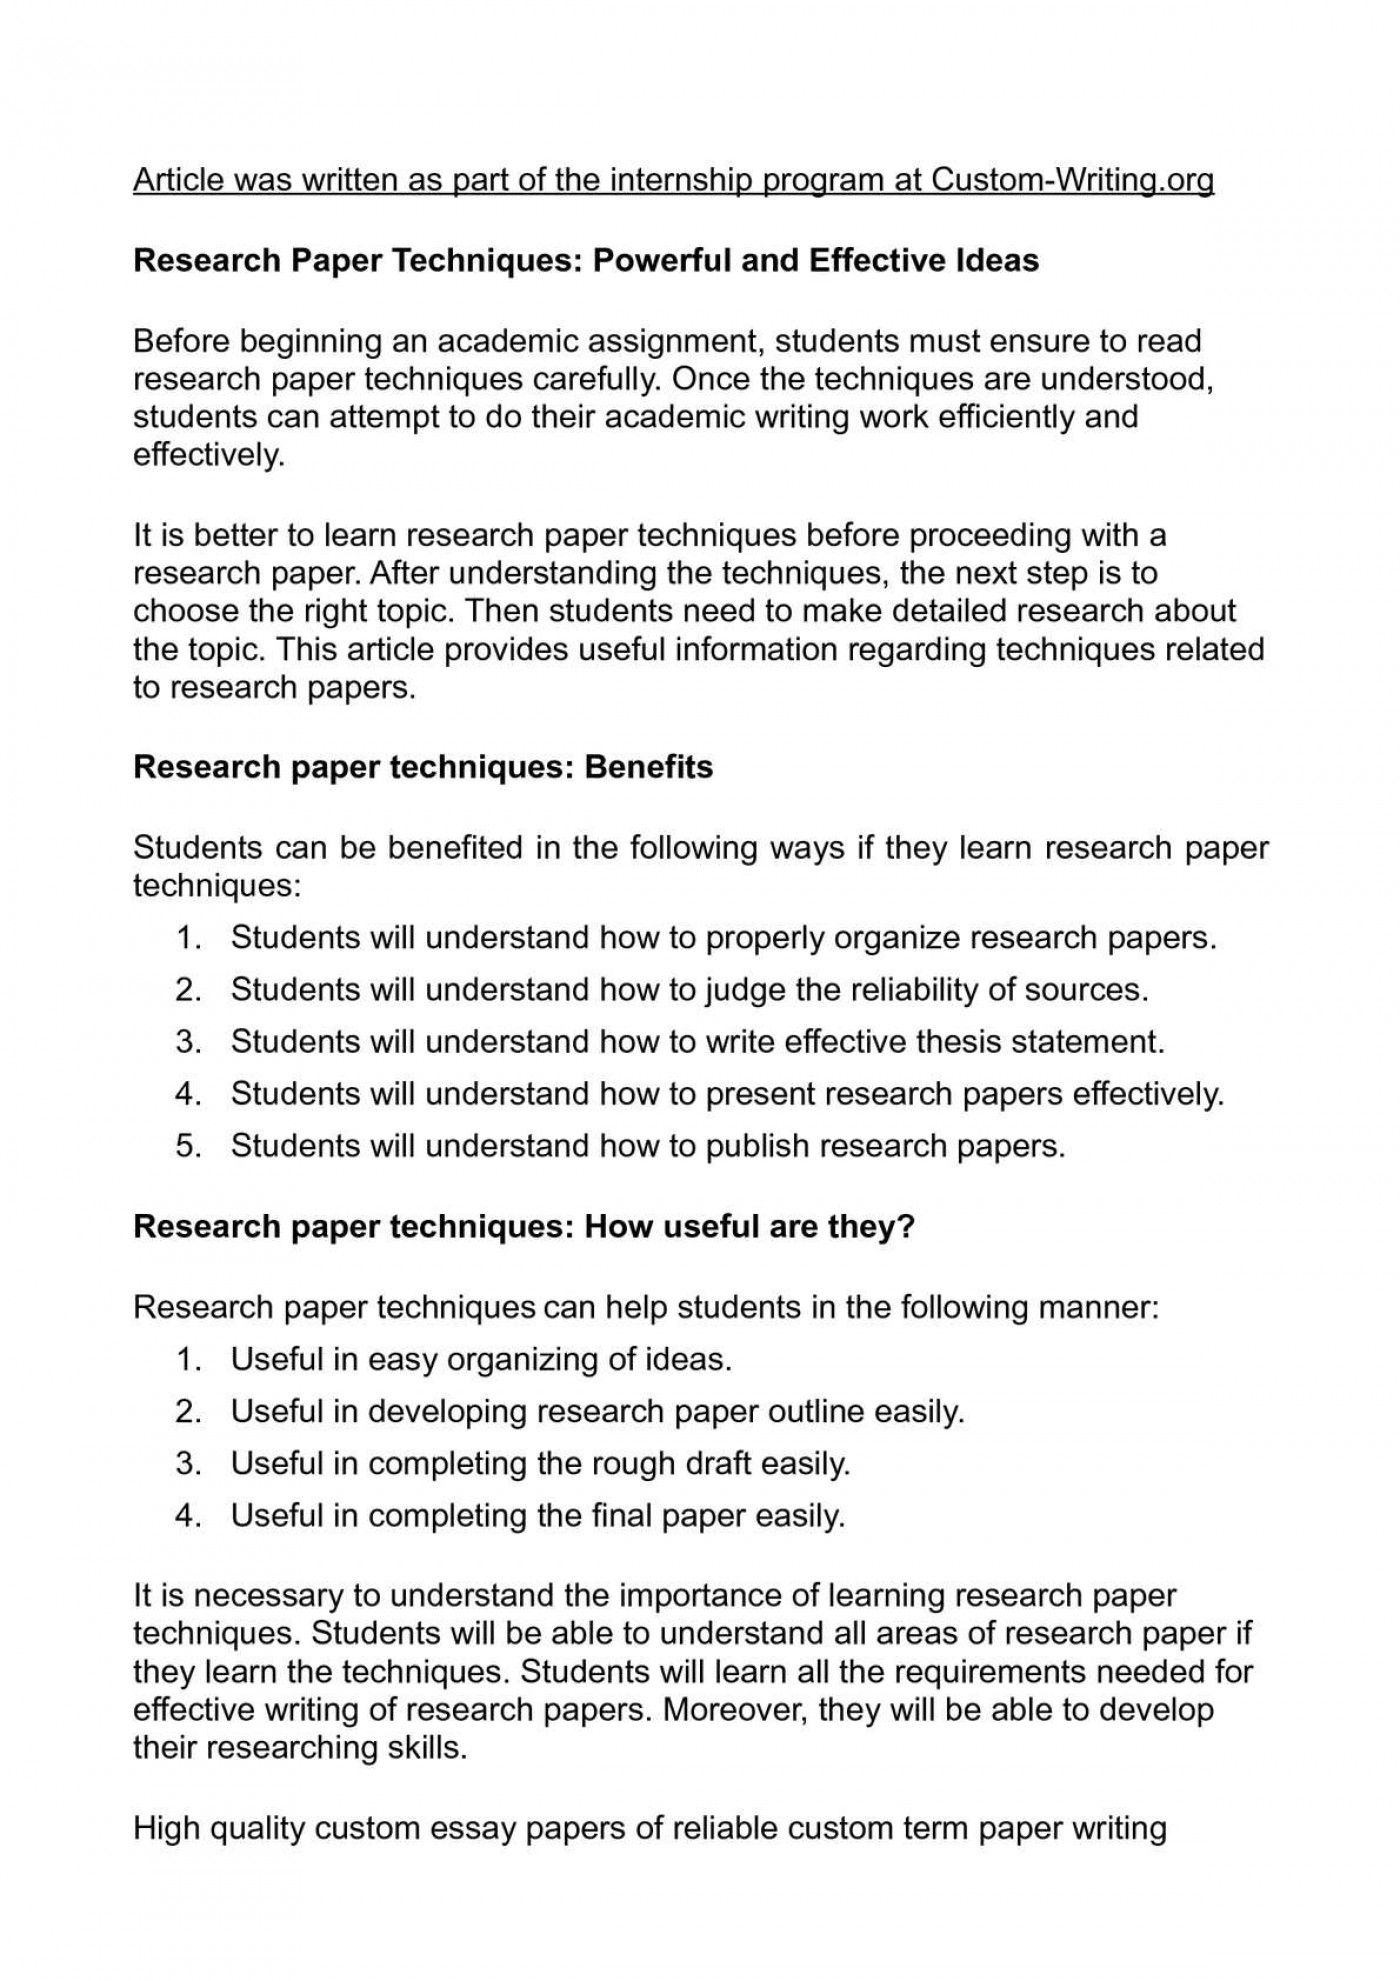 003 Ideas For Research Paper Fascinating Papers In Computer Science Middle School 1400